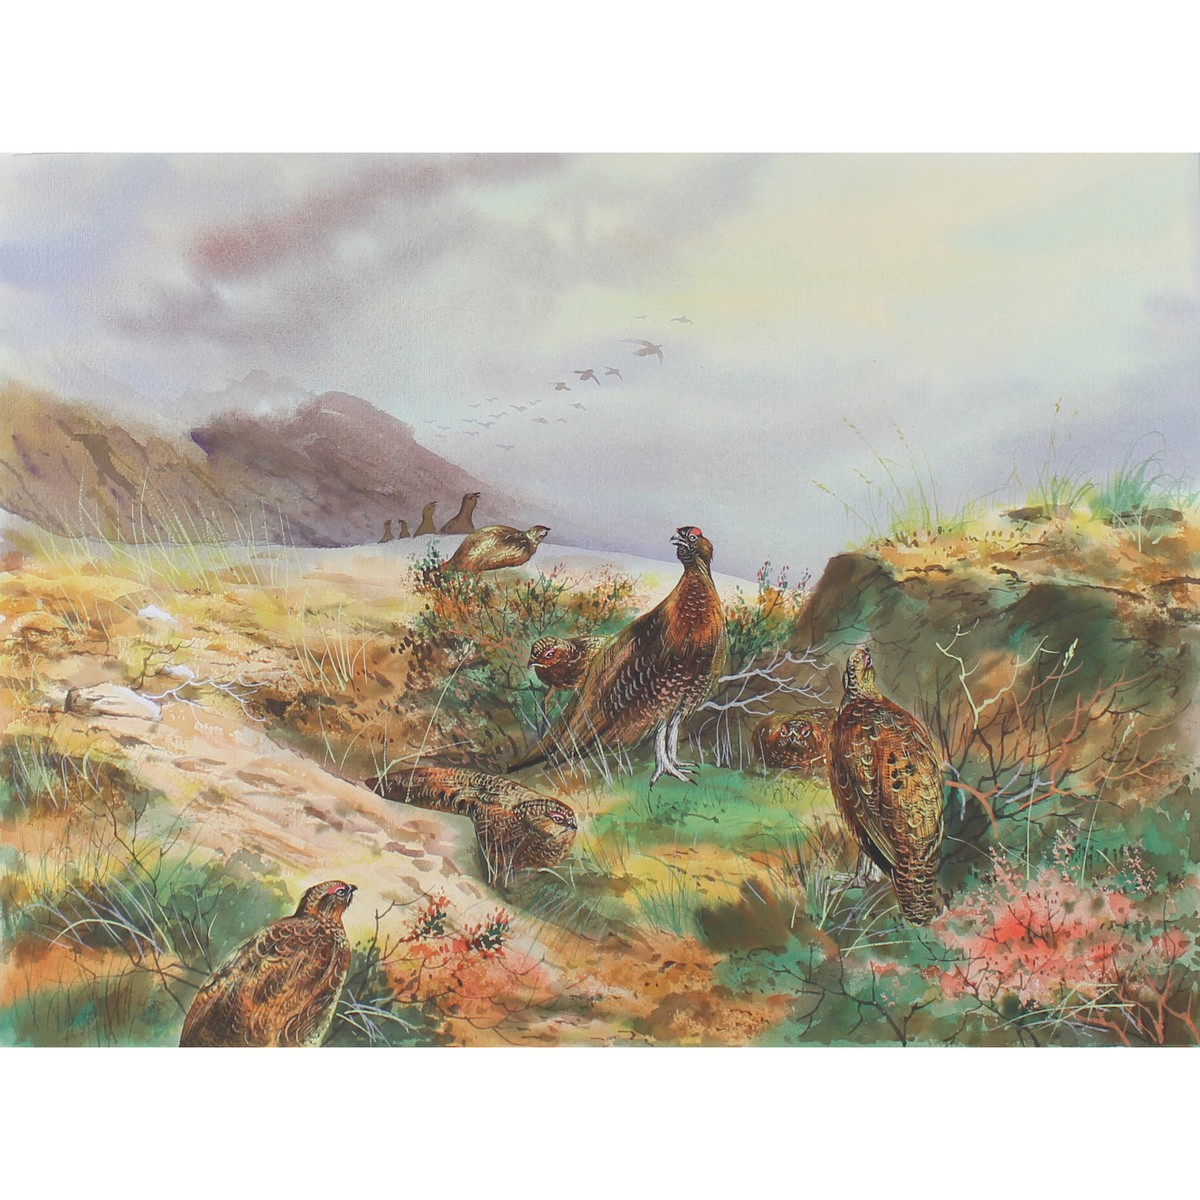 Lot 51 - Lilly, Ken 1929-1996 British AR, Two Watercolours.